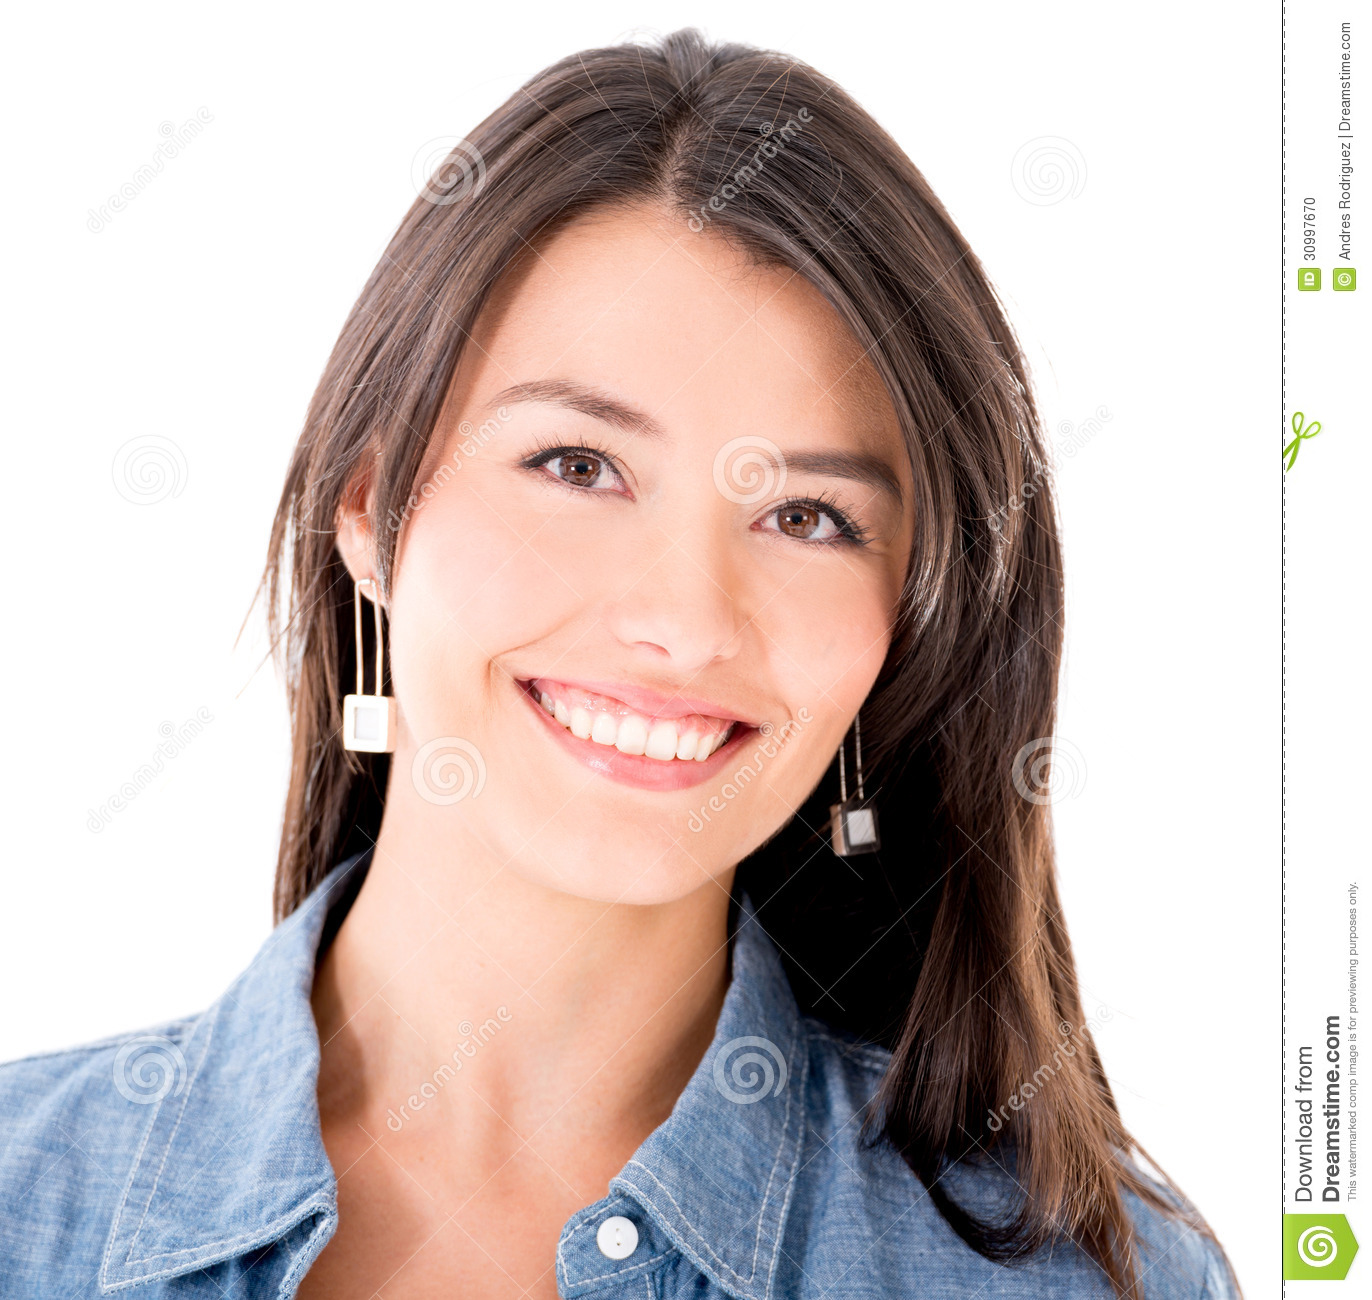 happy-woman-smiling-isolated-over-white-background-30997670.jpg